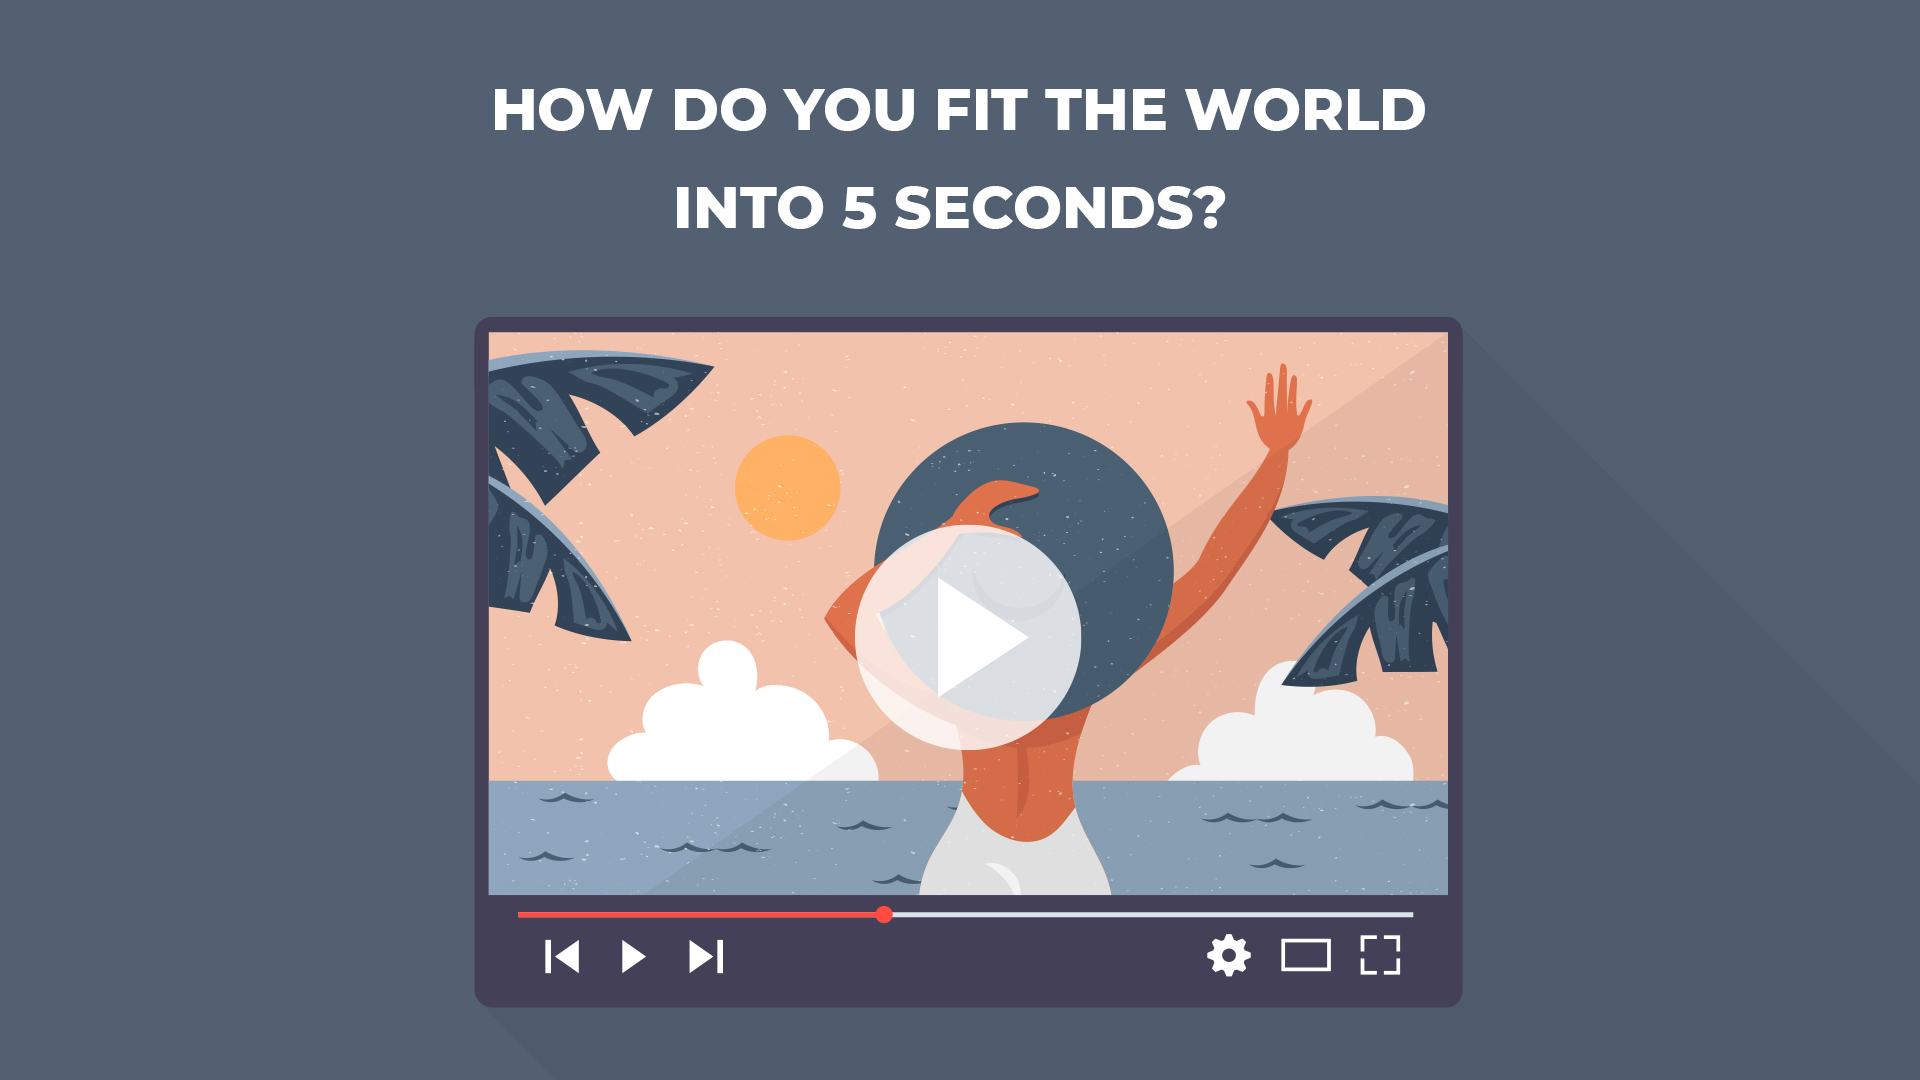 How do you fit the world into 5 seconds